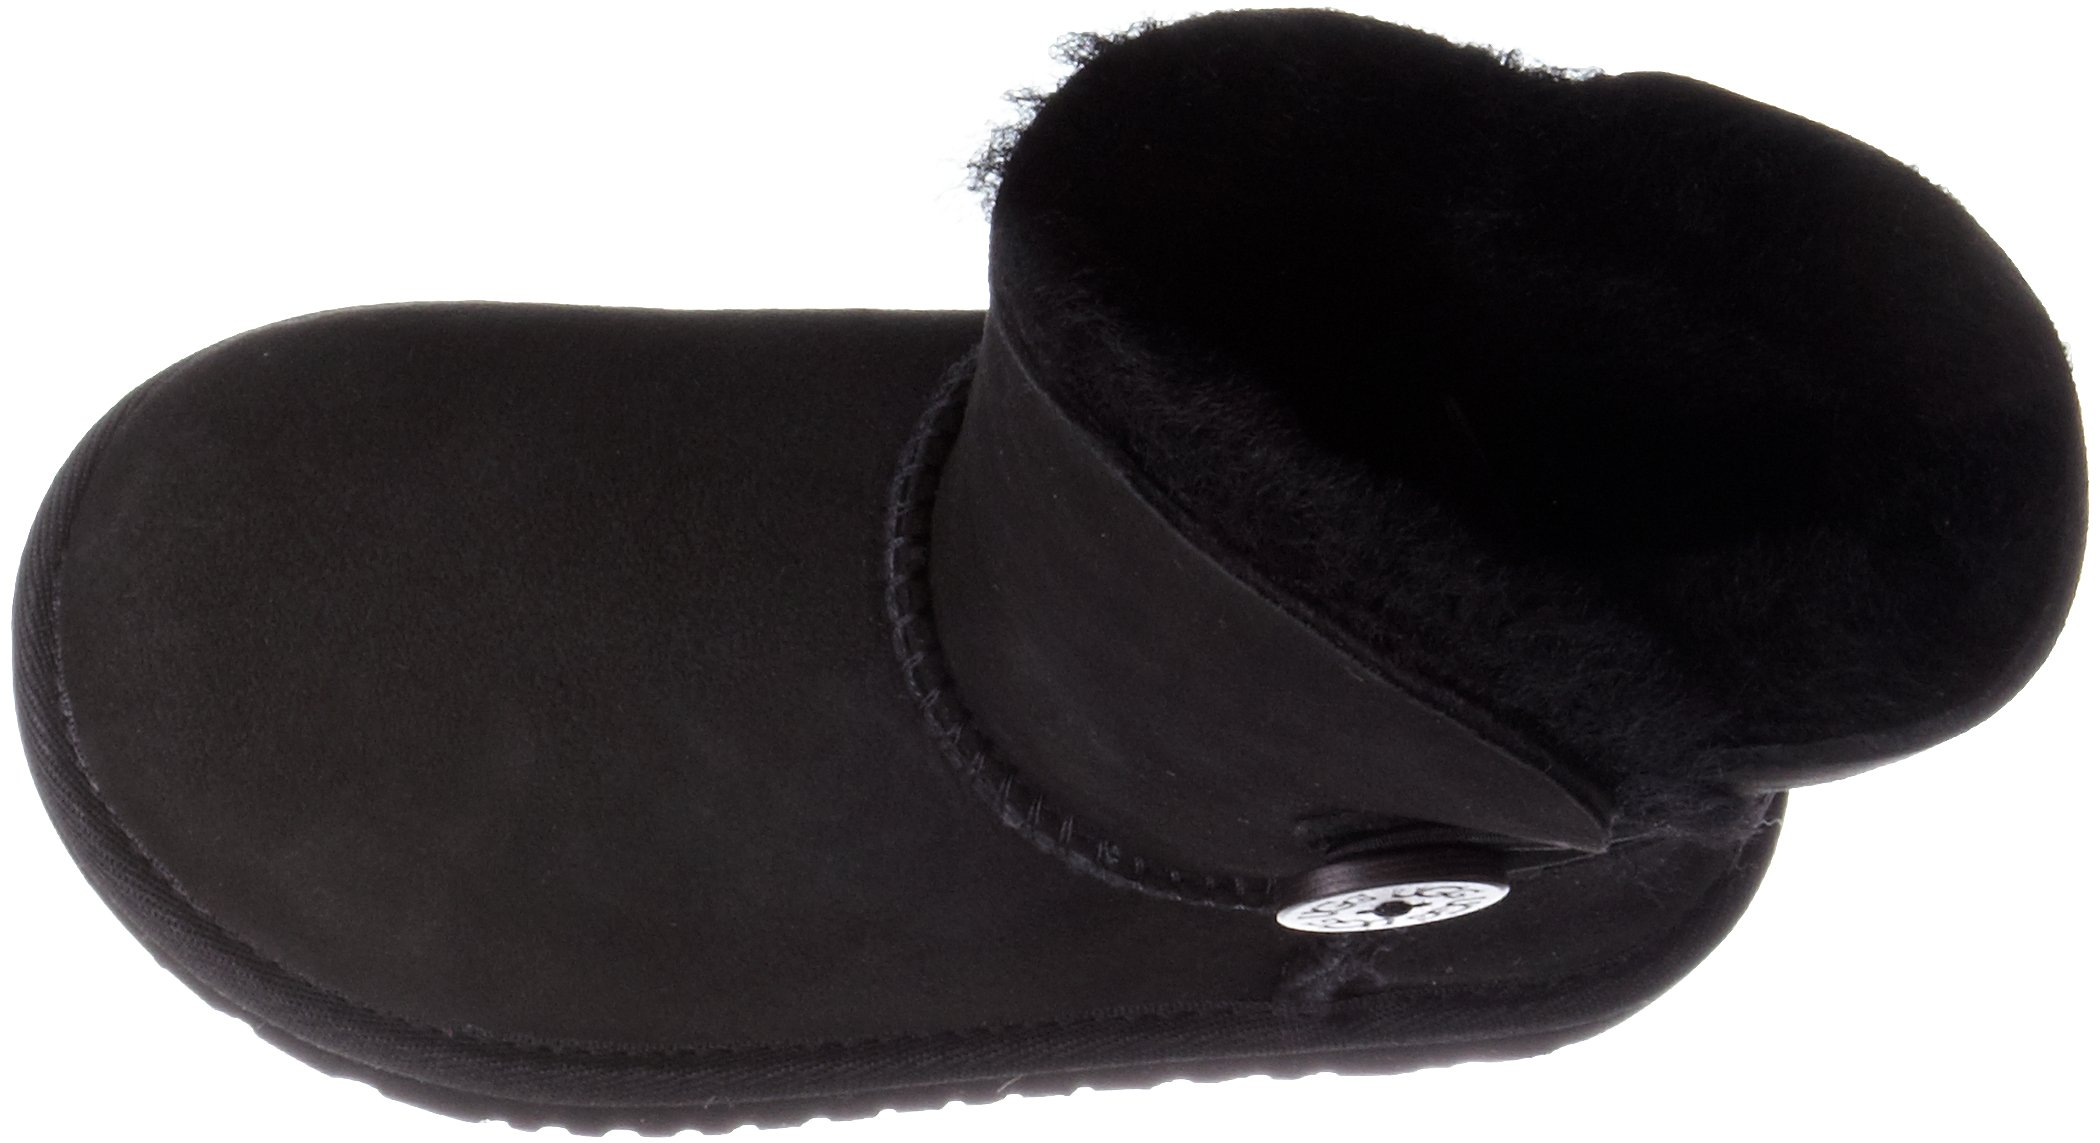 UGG Bailey Button Boot Kids, Black, 6 M US by UGG (Image #7)